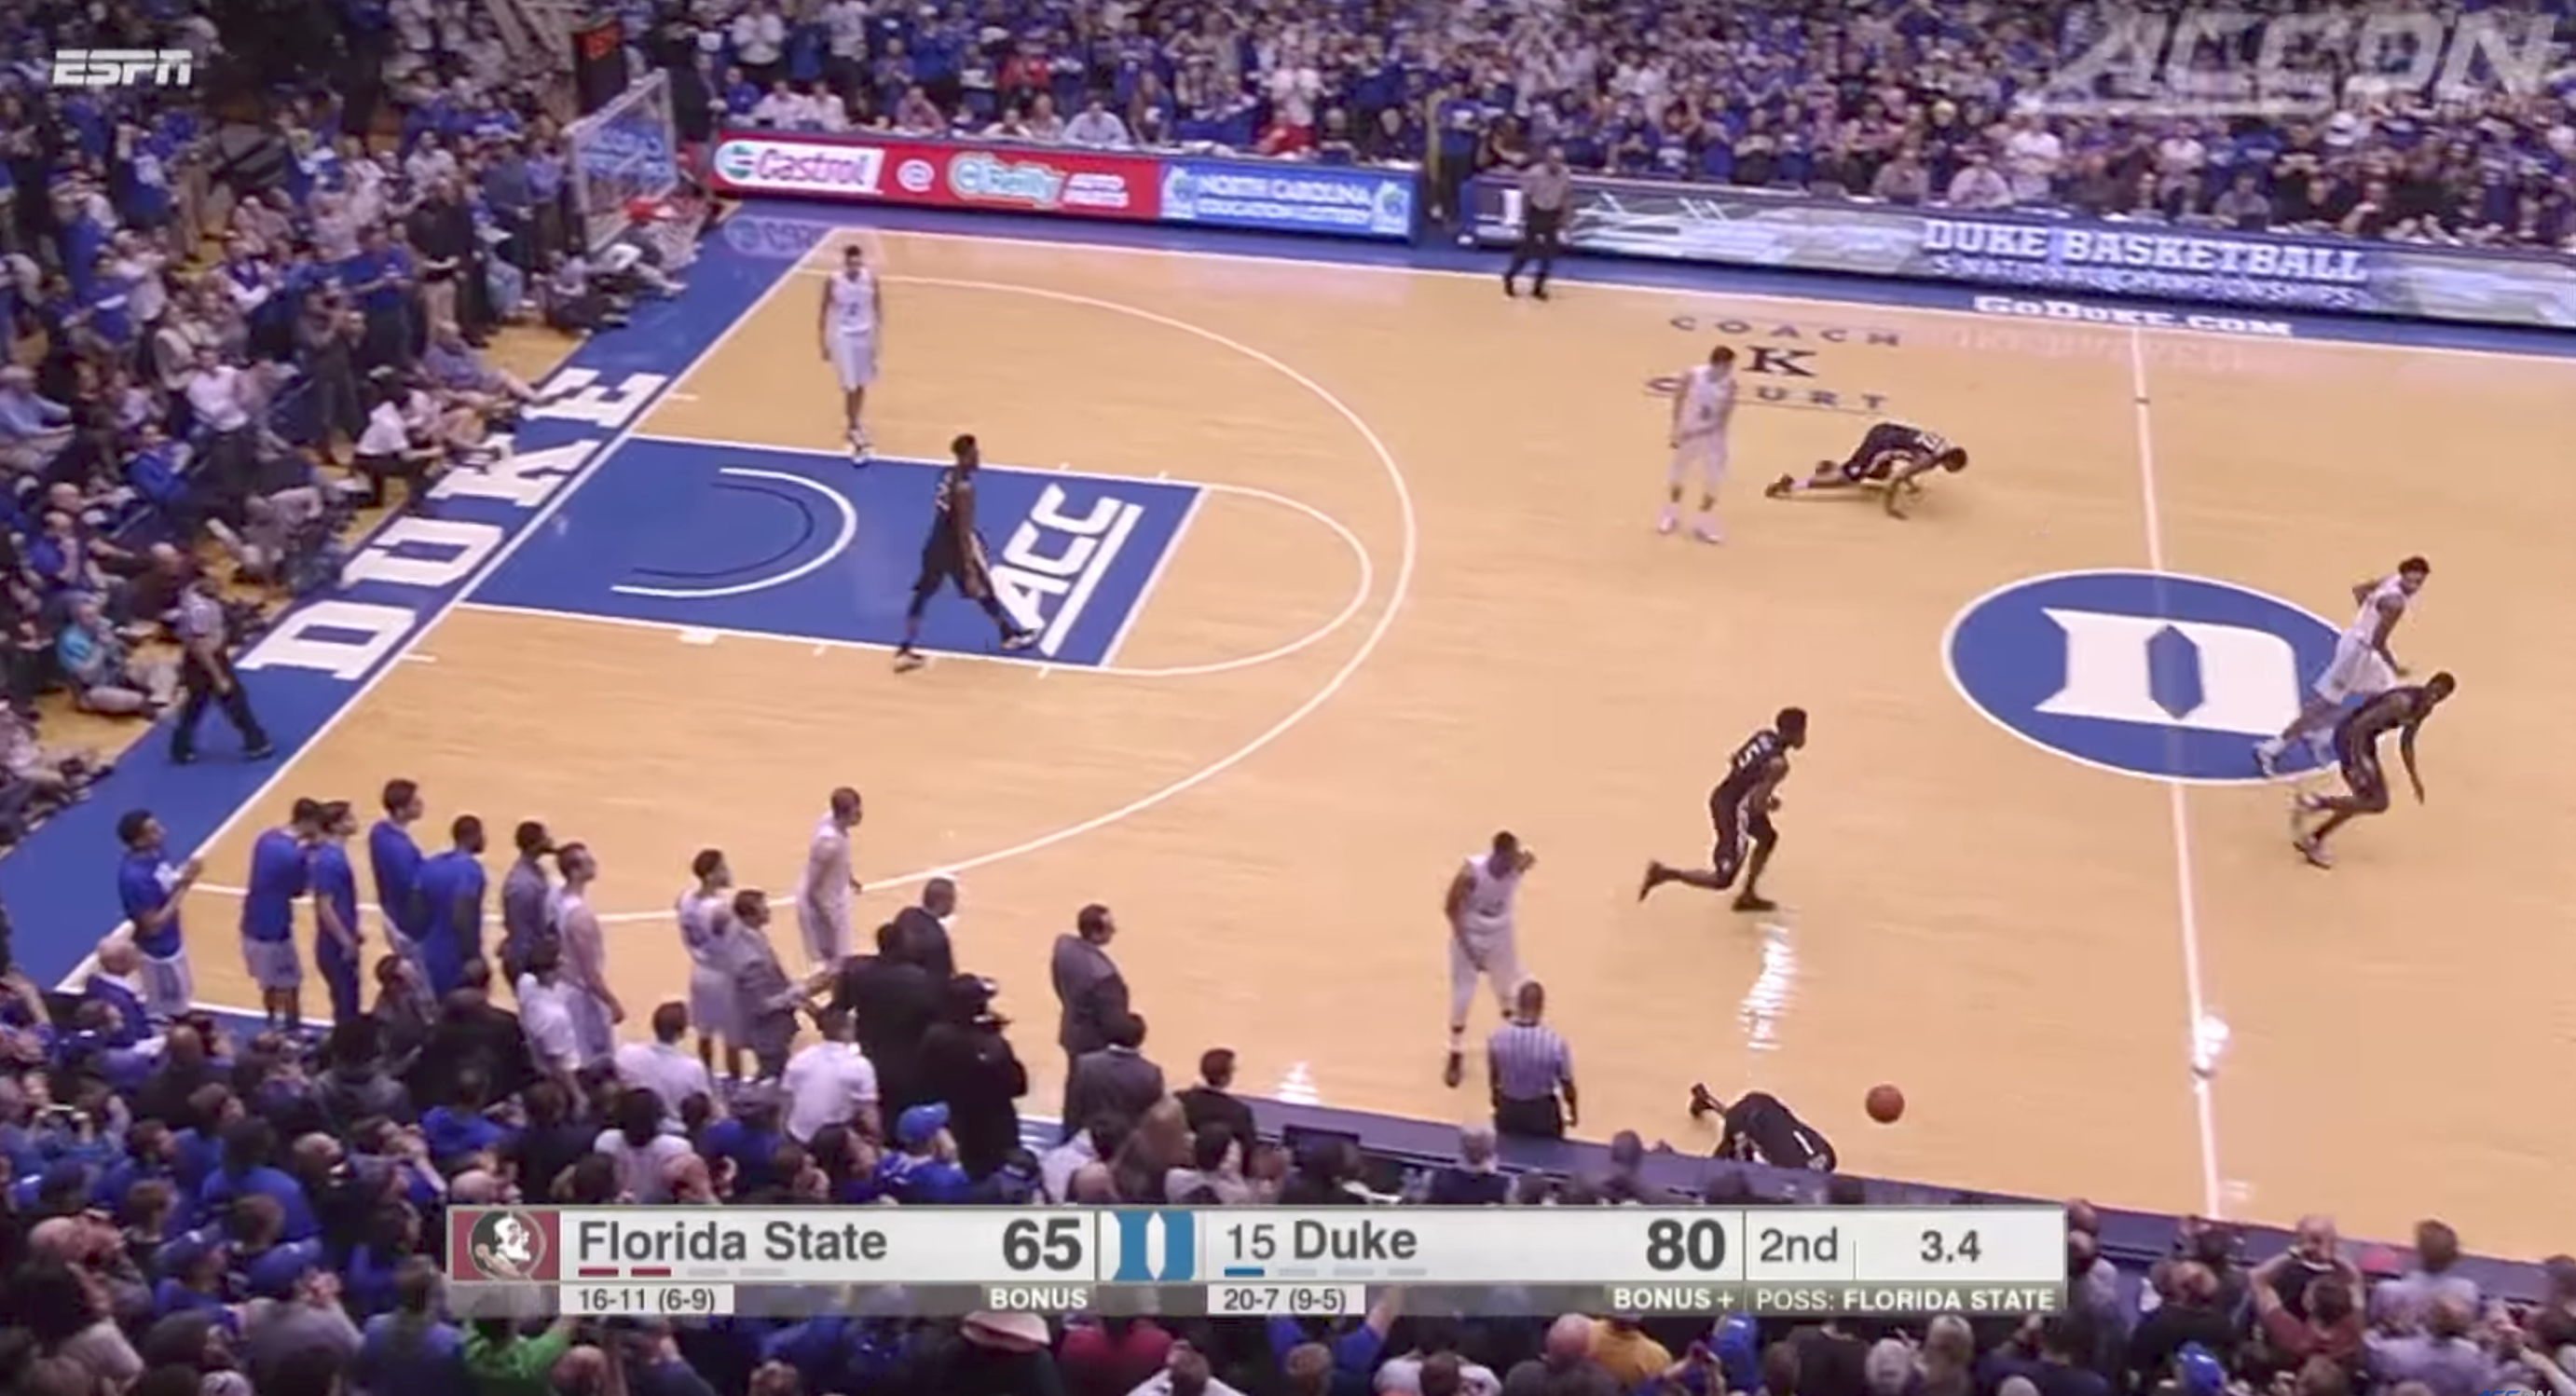 Espn S New College Basketball Scorebug Is Not Going Over Well